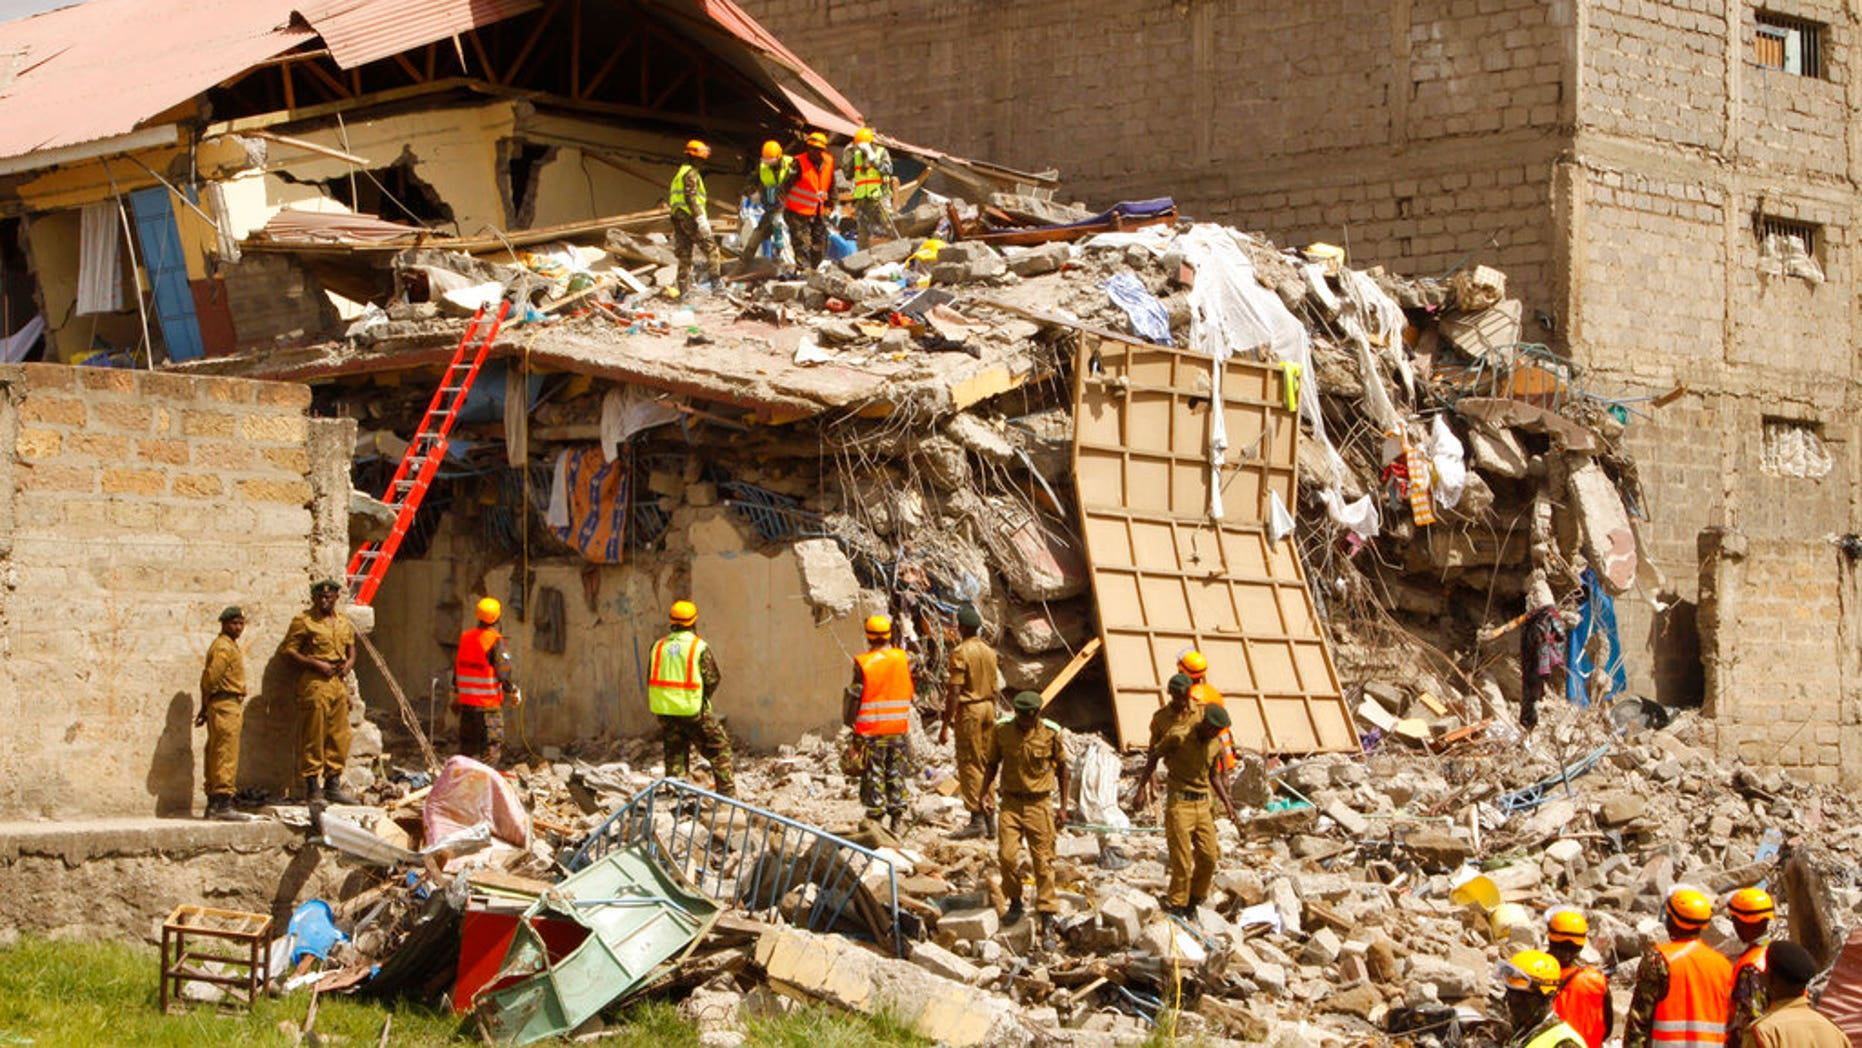 Rescuers work at the site of a building collapse in Nairobi, Kenya Tuesday, June 13, 2017. Nairobi Police Chief Japheth Koome said Tuesday that at least 10 people had been reported missing after the collapse Monday night. (AP Photo/Khalil Senosi)